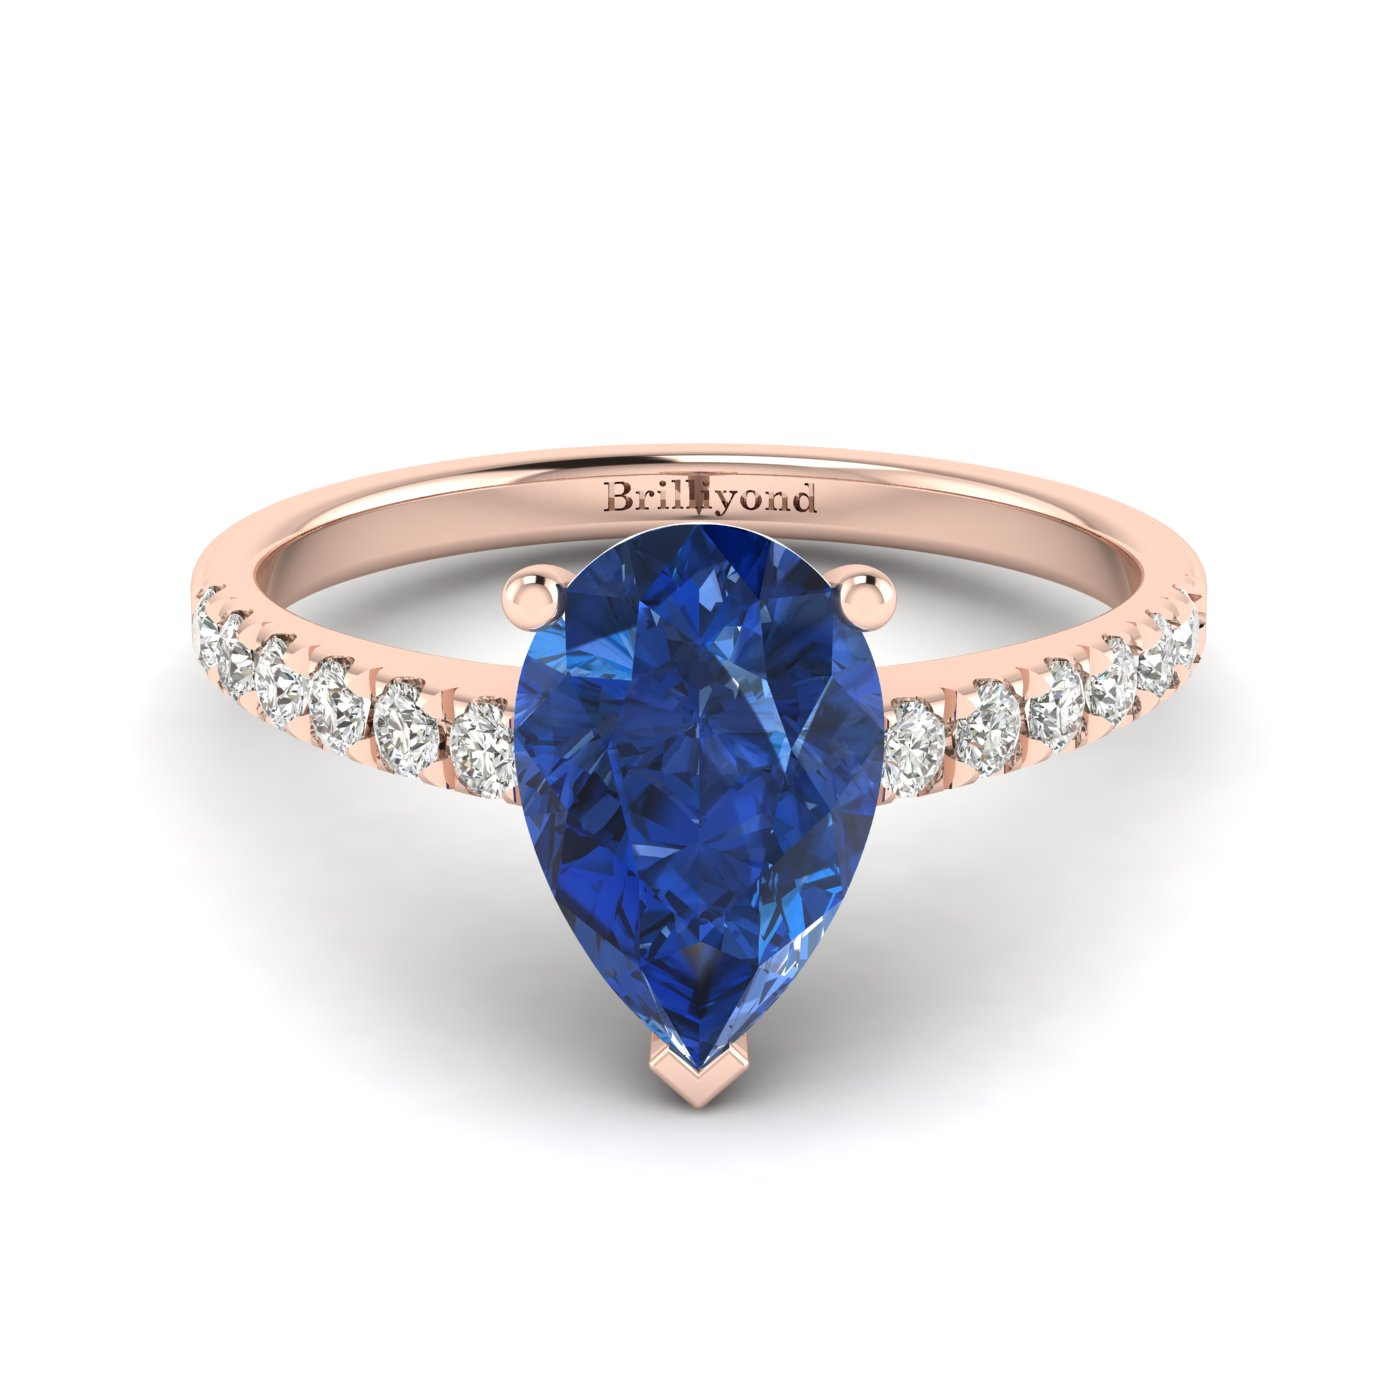 Pear Shaped Blue Ceylon Sapphire on 18k Rose Gold Band